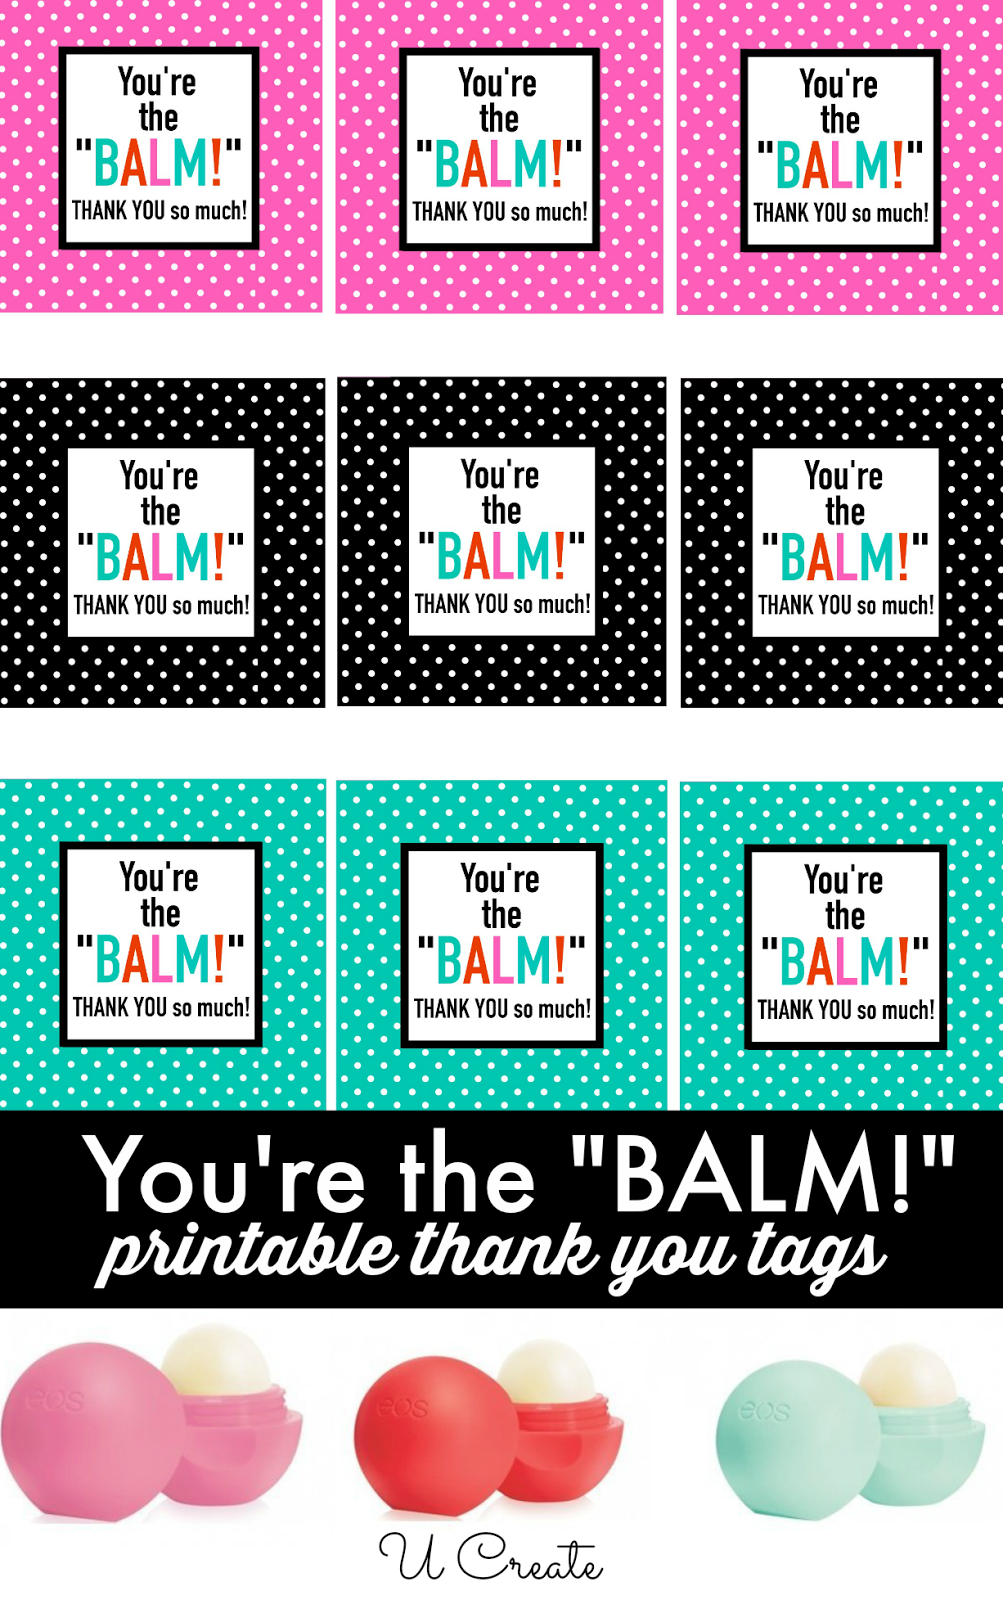 Free Printables: You're the BALM! Simple thank you gift anytime of year! Teacher version available, too!